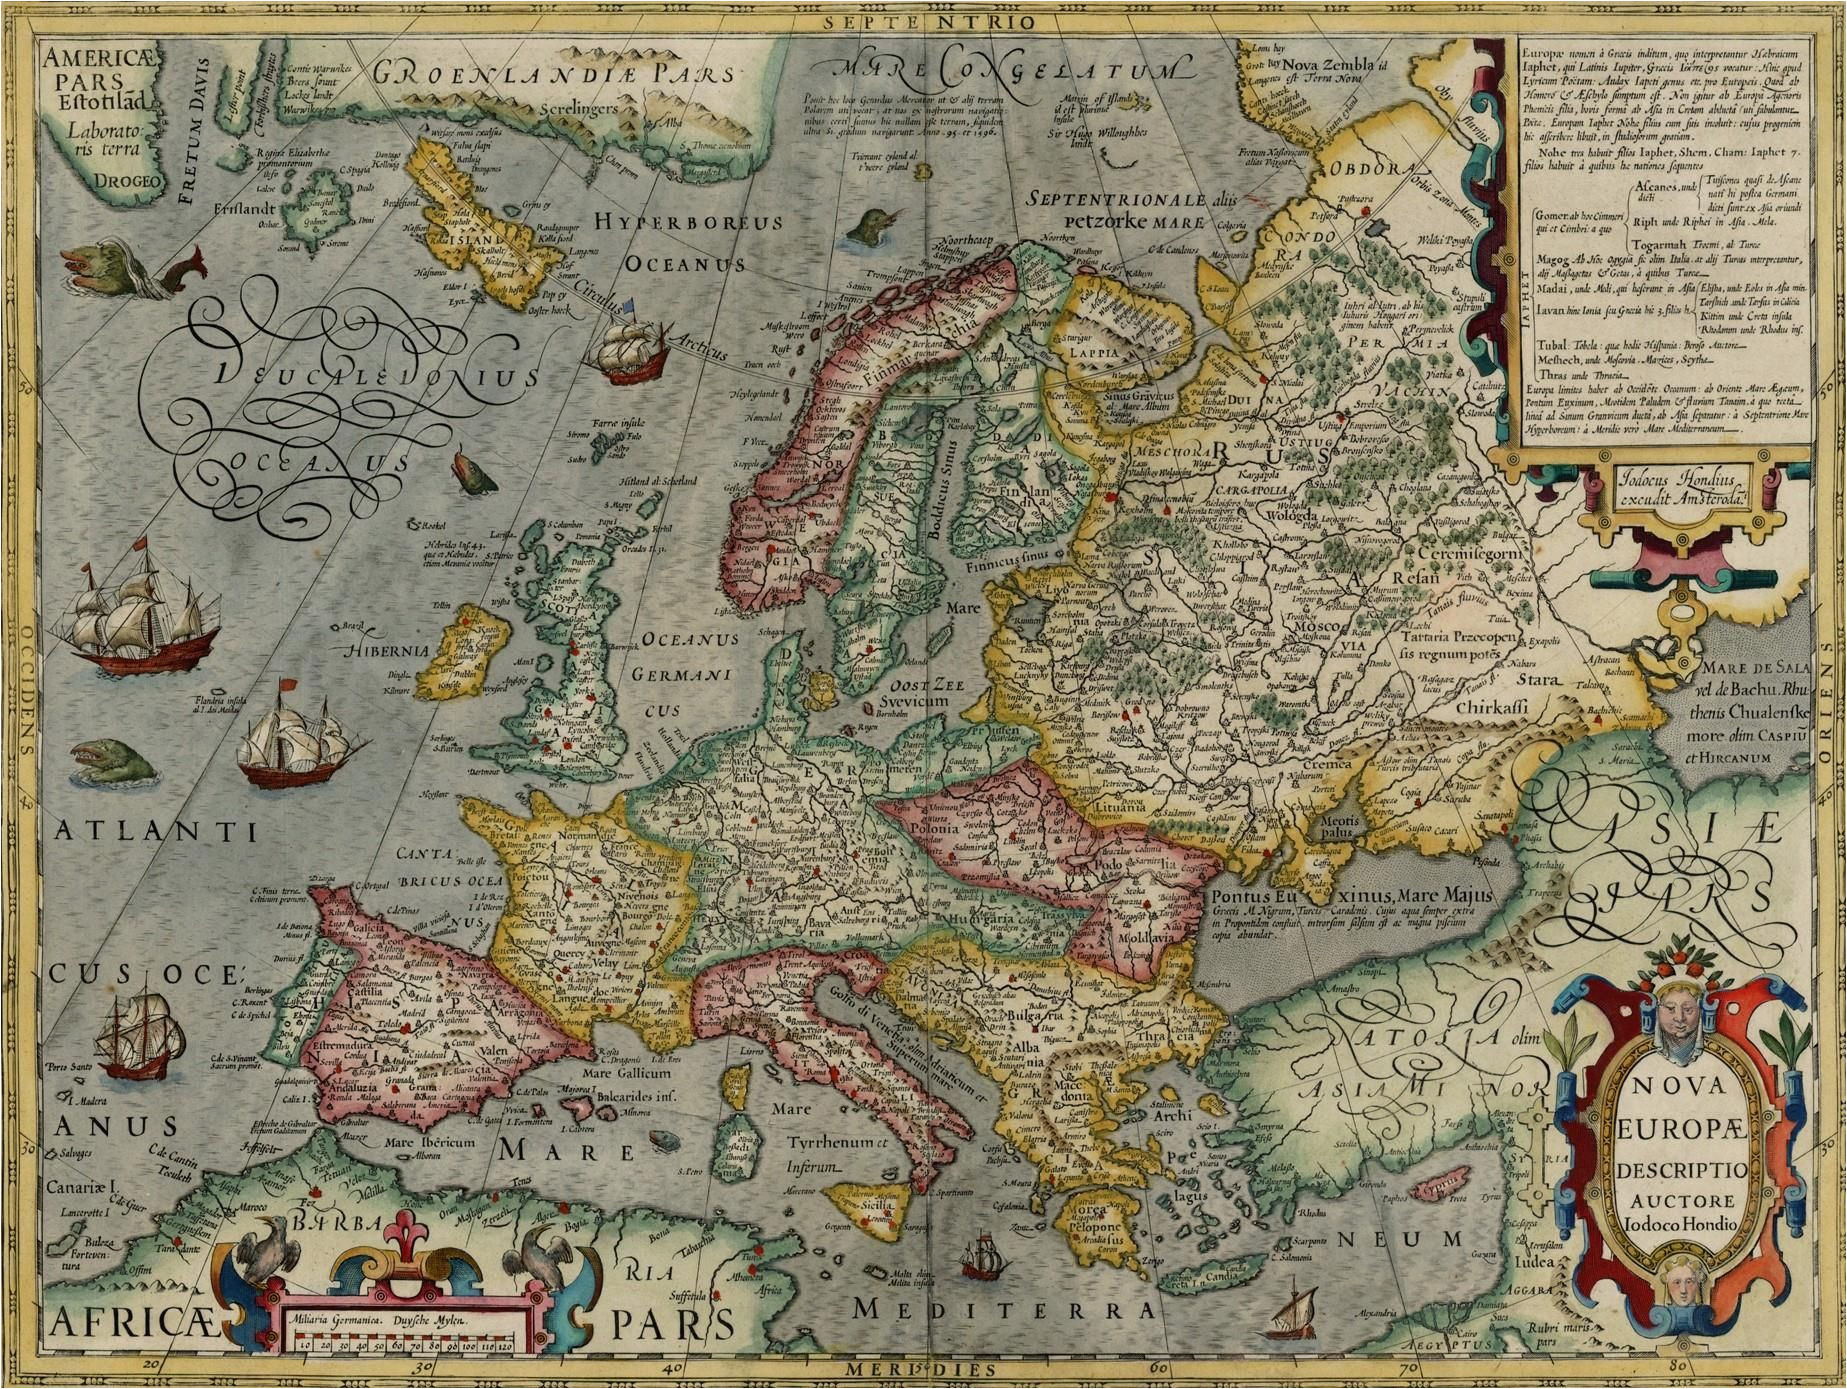 Iceland On Map Of Europe Map Of Europe by Jodocus Hondius 1630 the Map Shows A